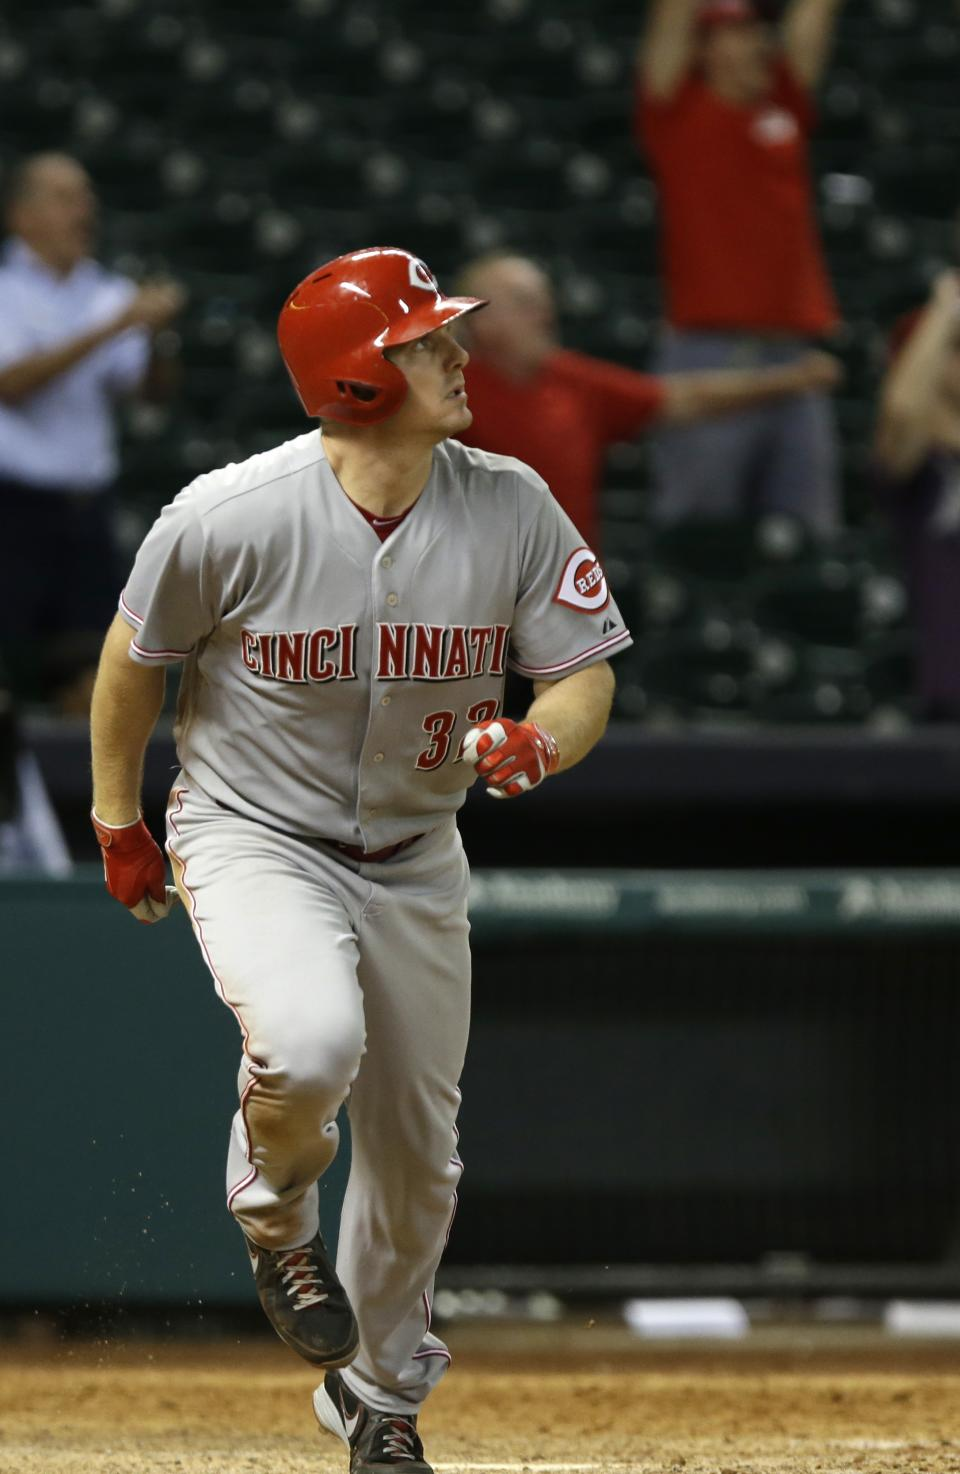 Bruce leads Reds over Astros 6-5 in 13 innings